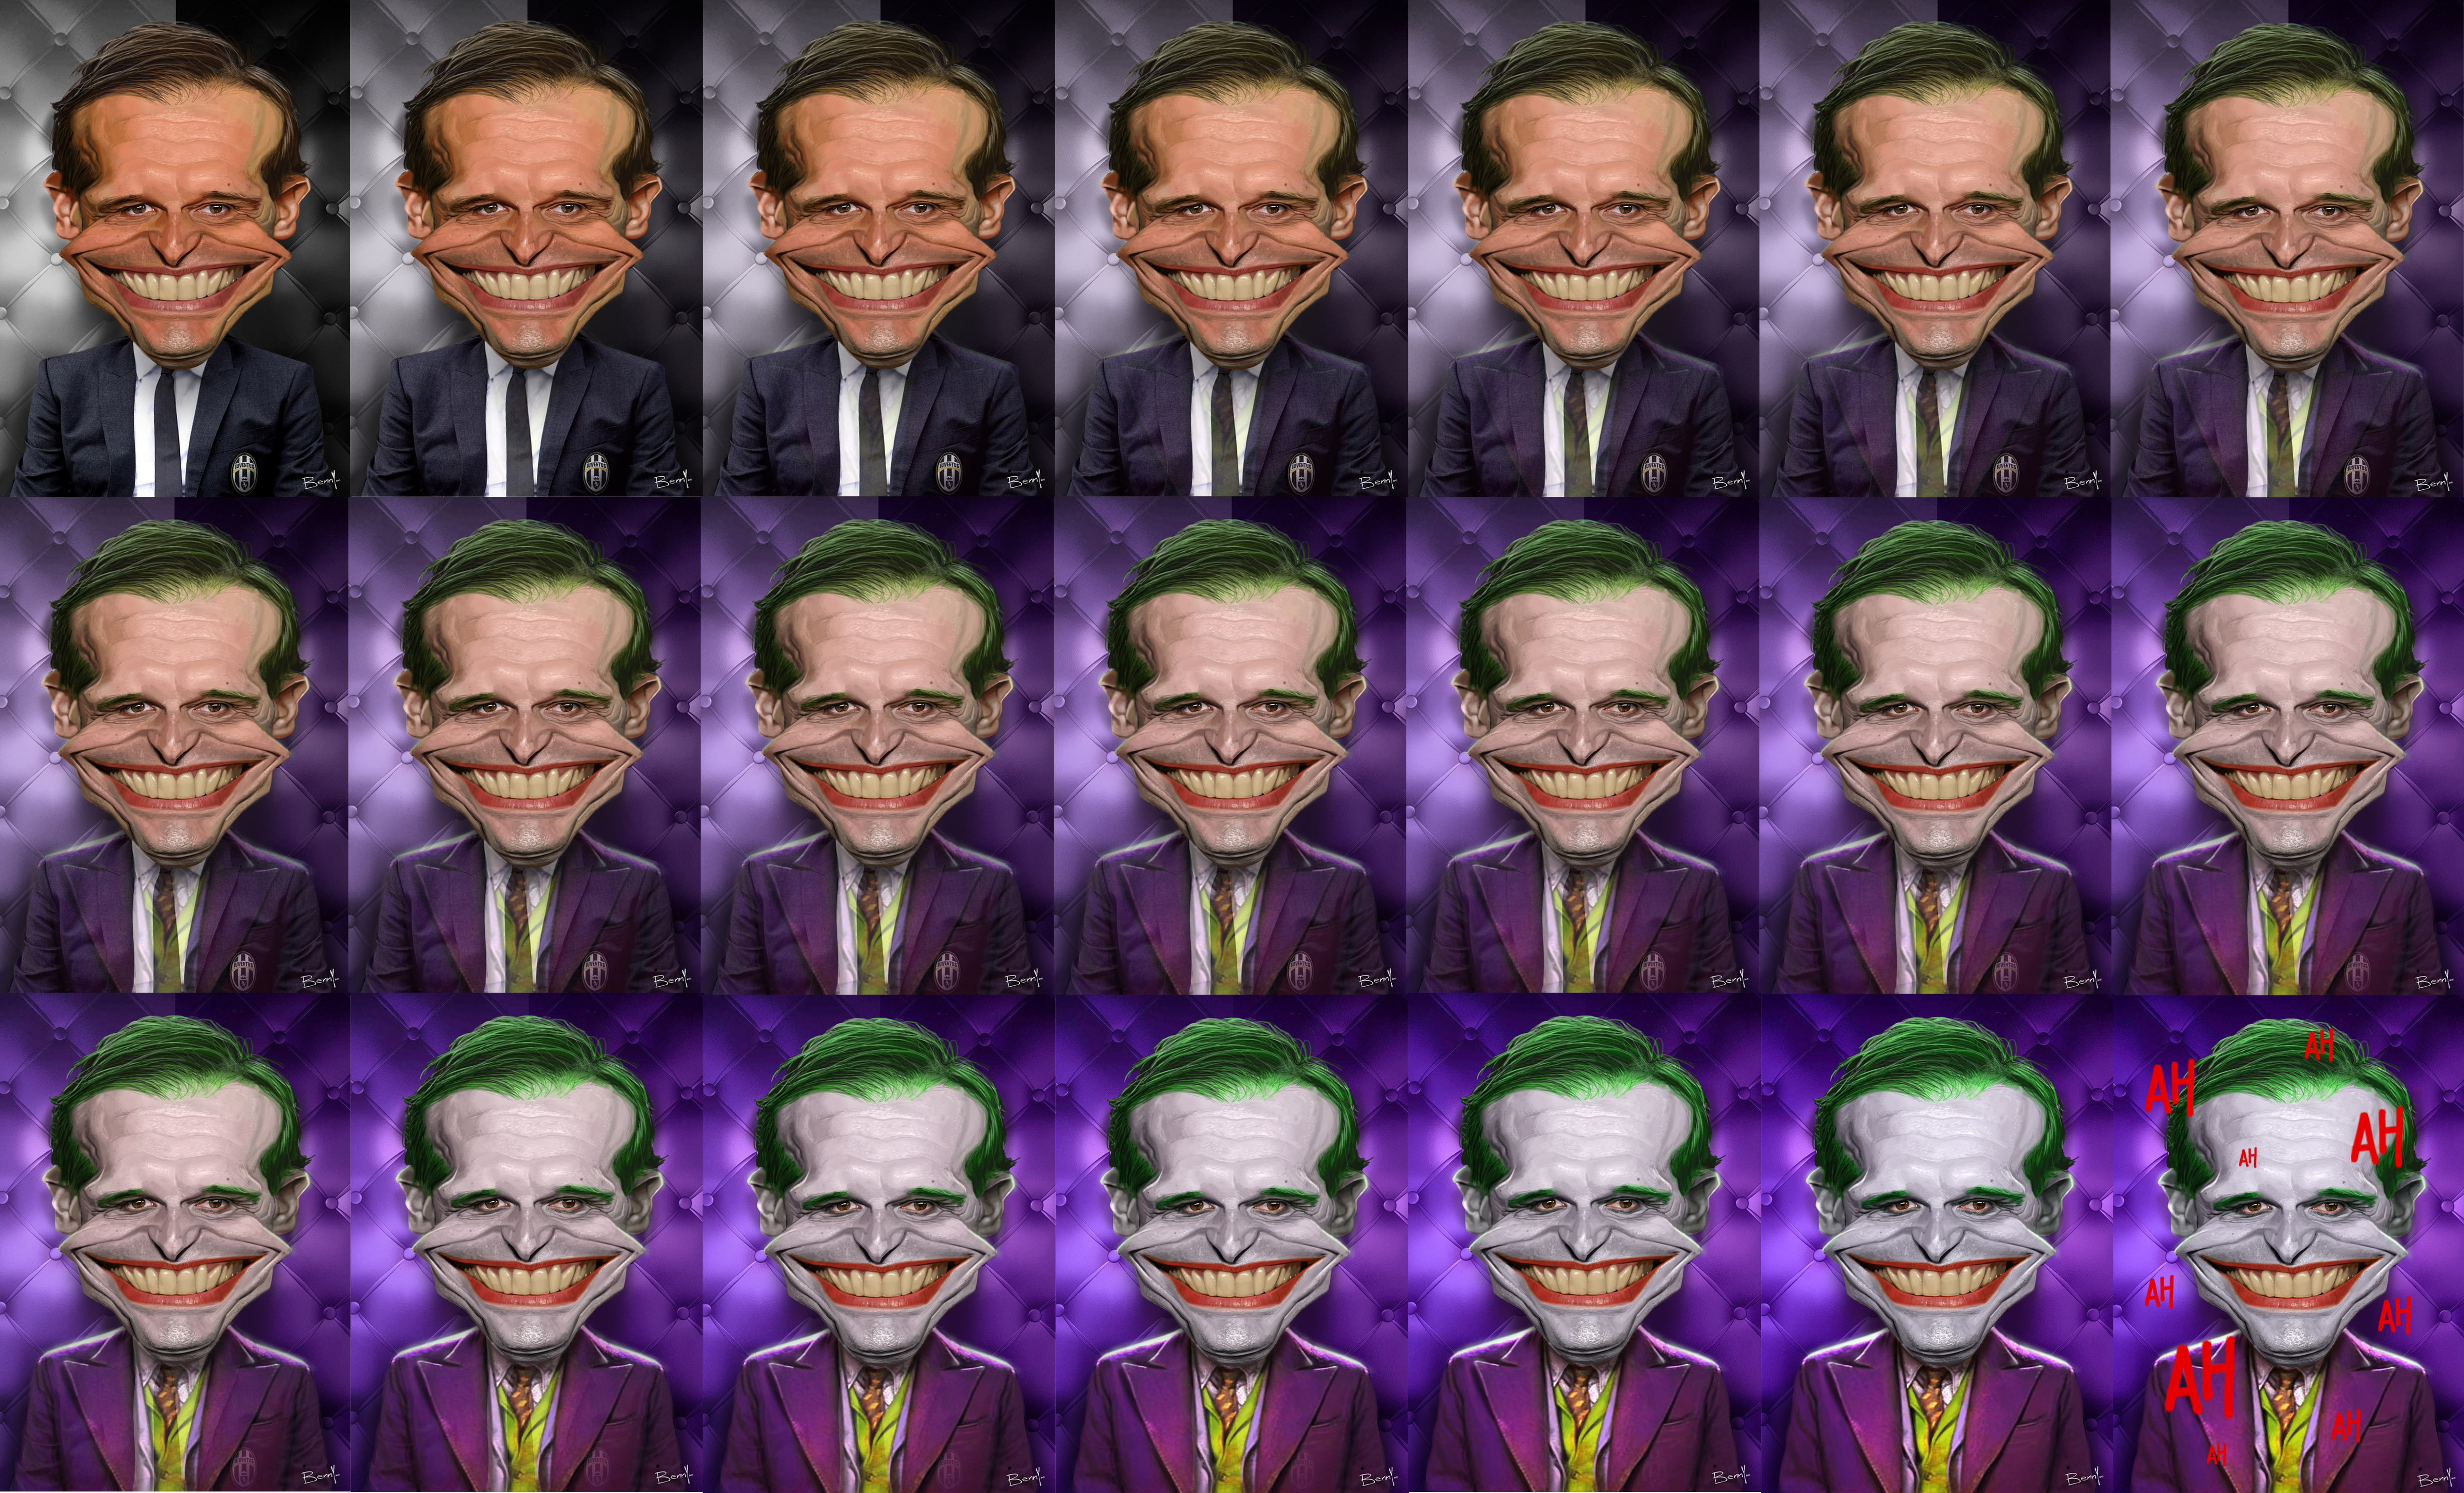 ALLEGRI JOKER TOTALE bassa.jpg